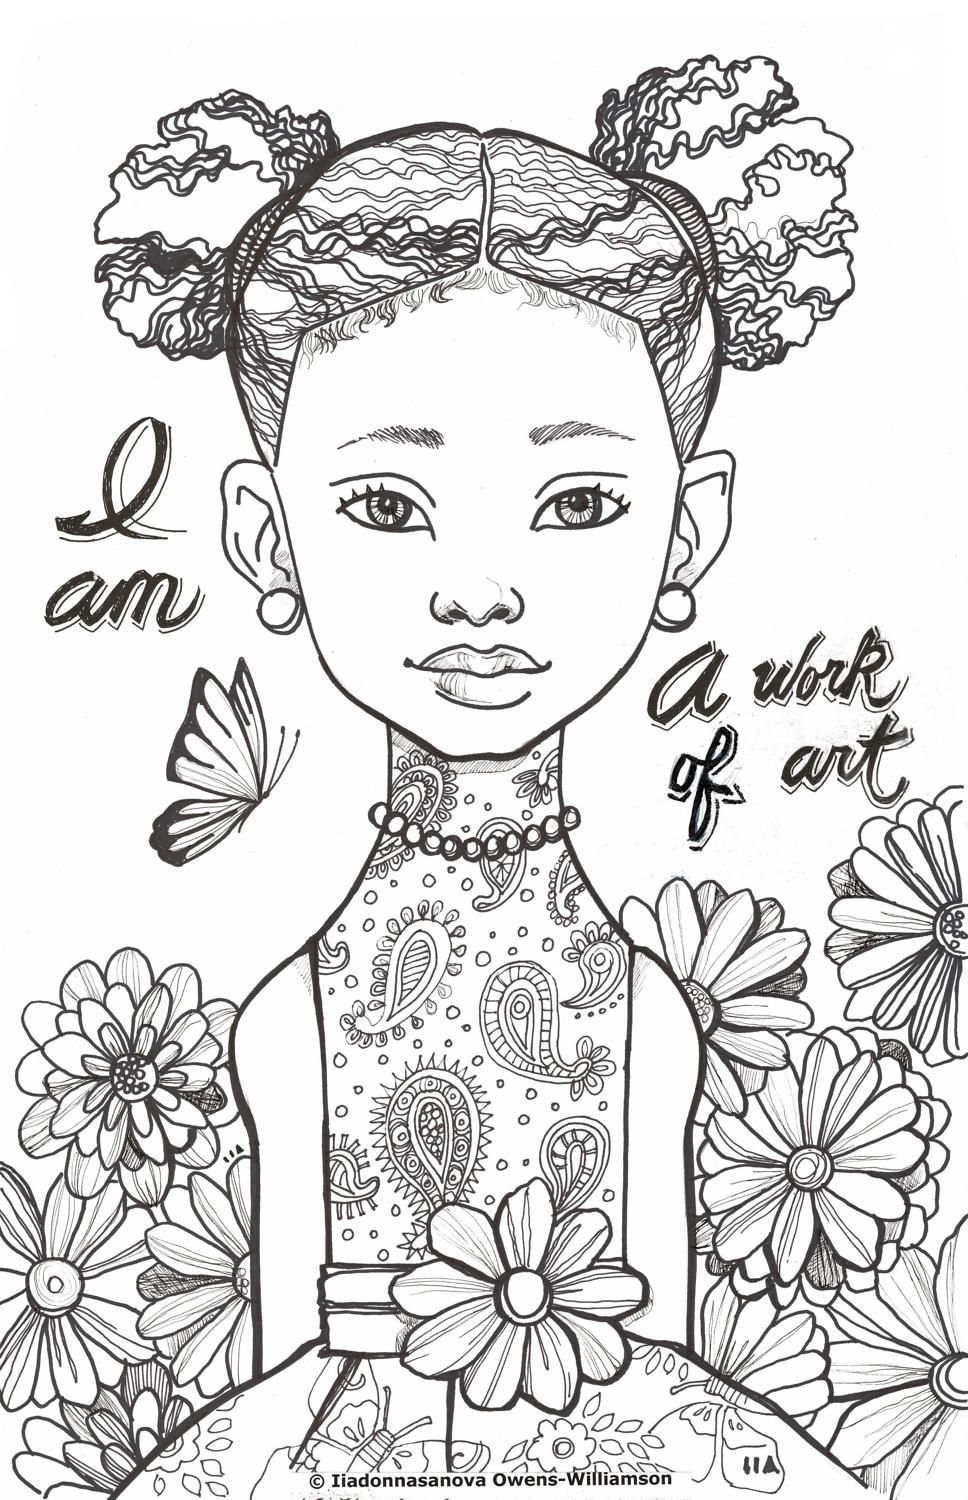 I Am Creative Expression Coloring Sheets Coloring Book Etsy Coloring Books Cartoon Coloring Pages Creative Expressions